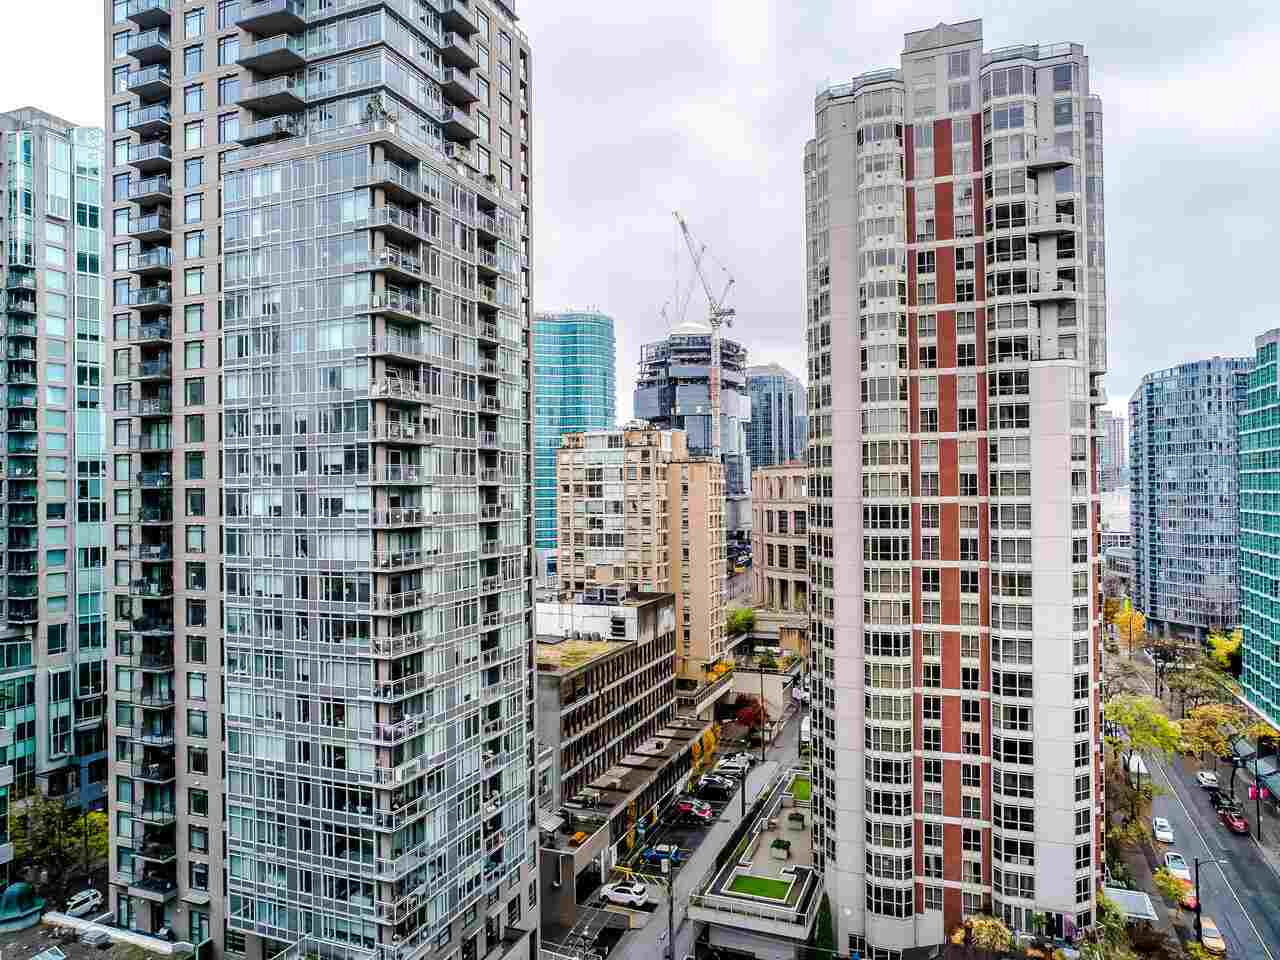 1810 909 MAINLAND STREET - Yaletown Apartment/Condo for sale, 1 Bedroom (R2518845) - #23